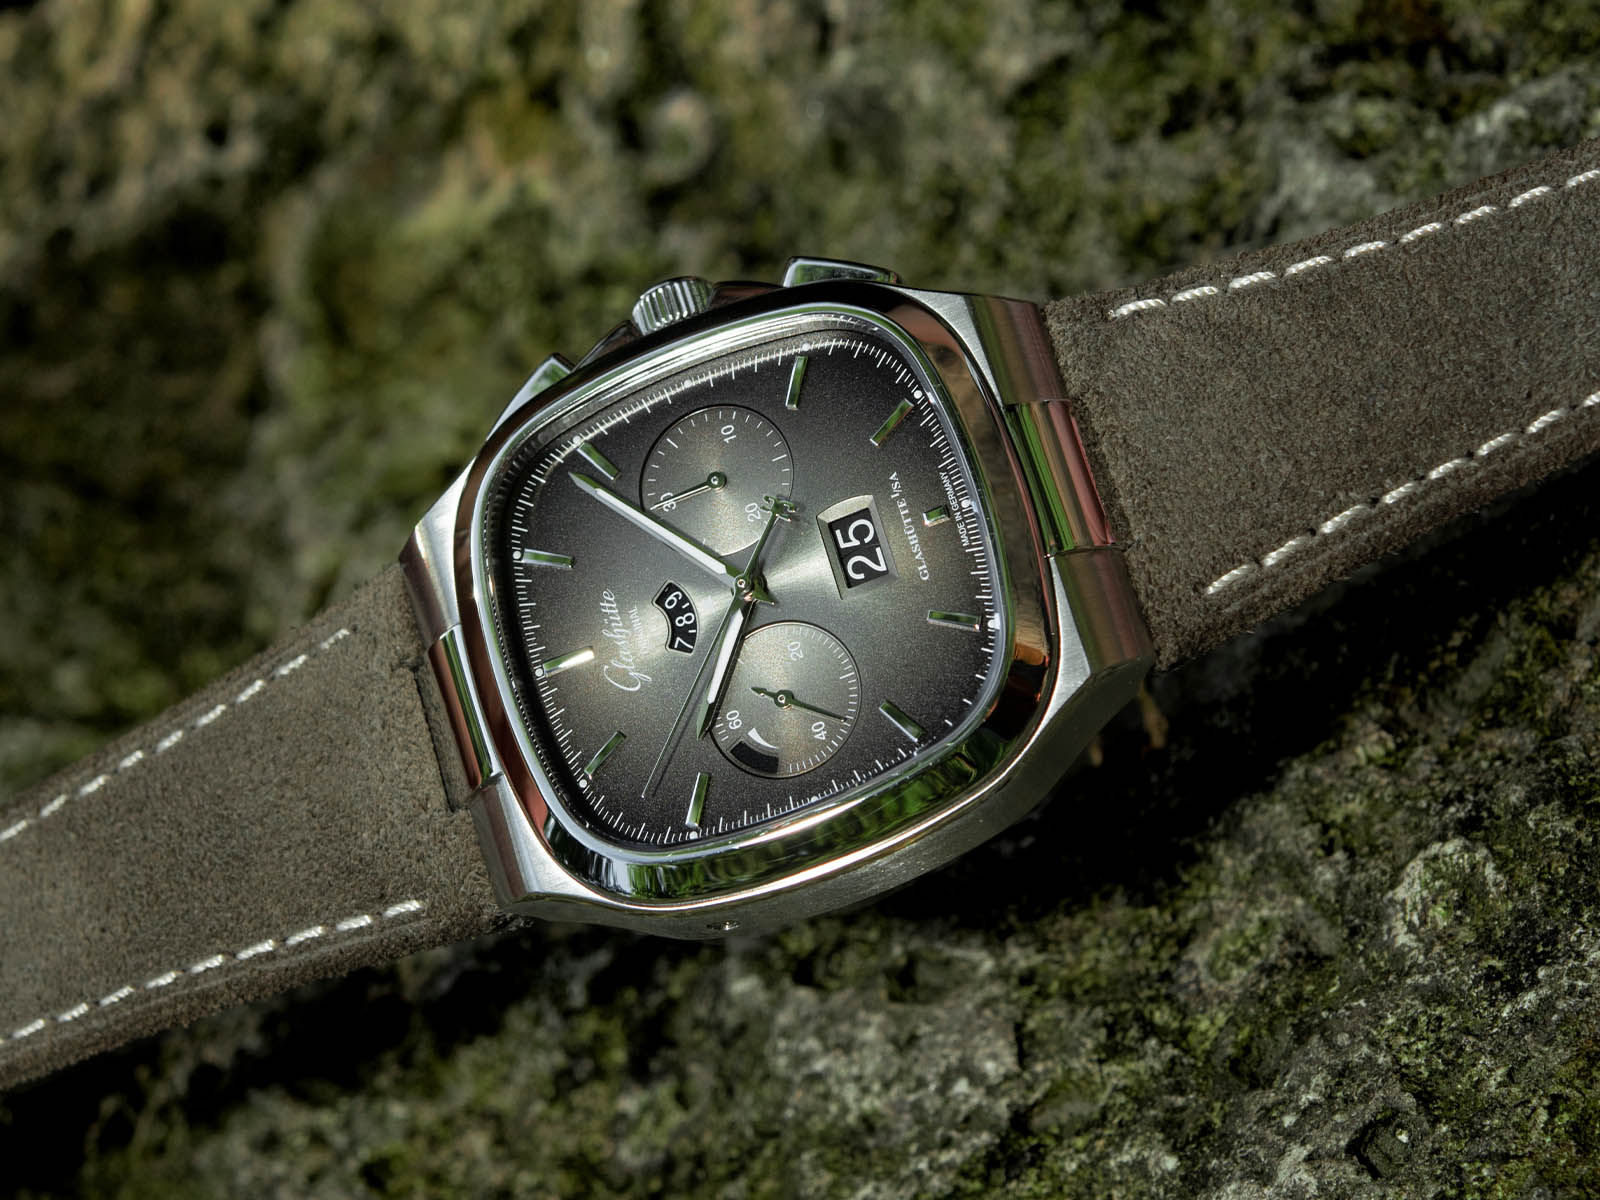 1-37-02-05-02-35-glashutte-original-seventies-chronograph-panorama-date-1.jpg